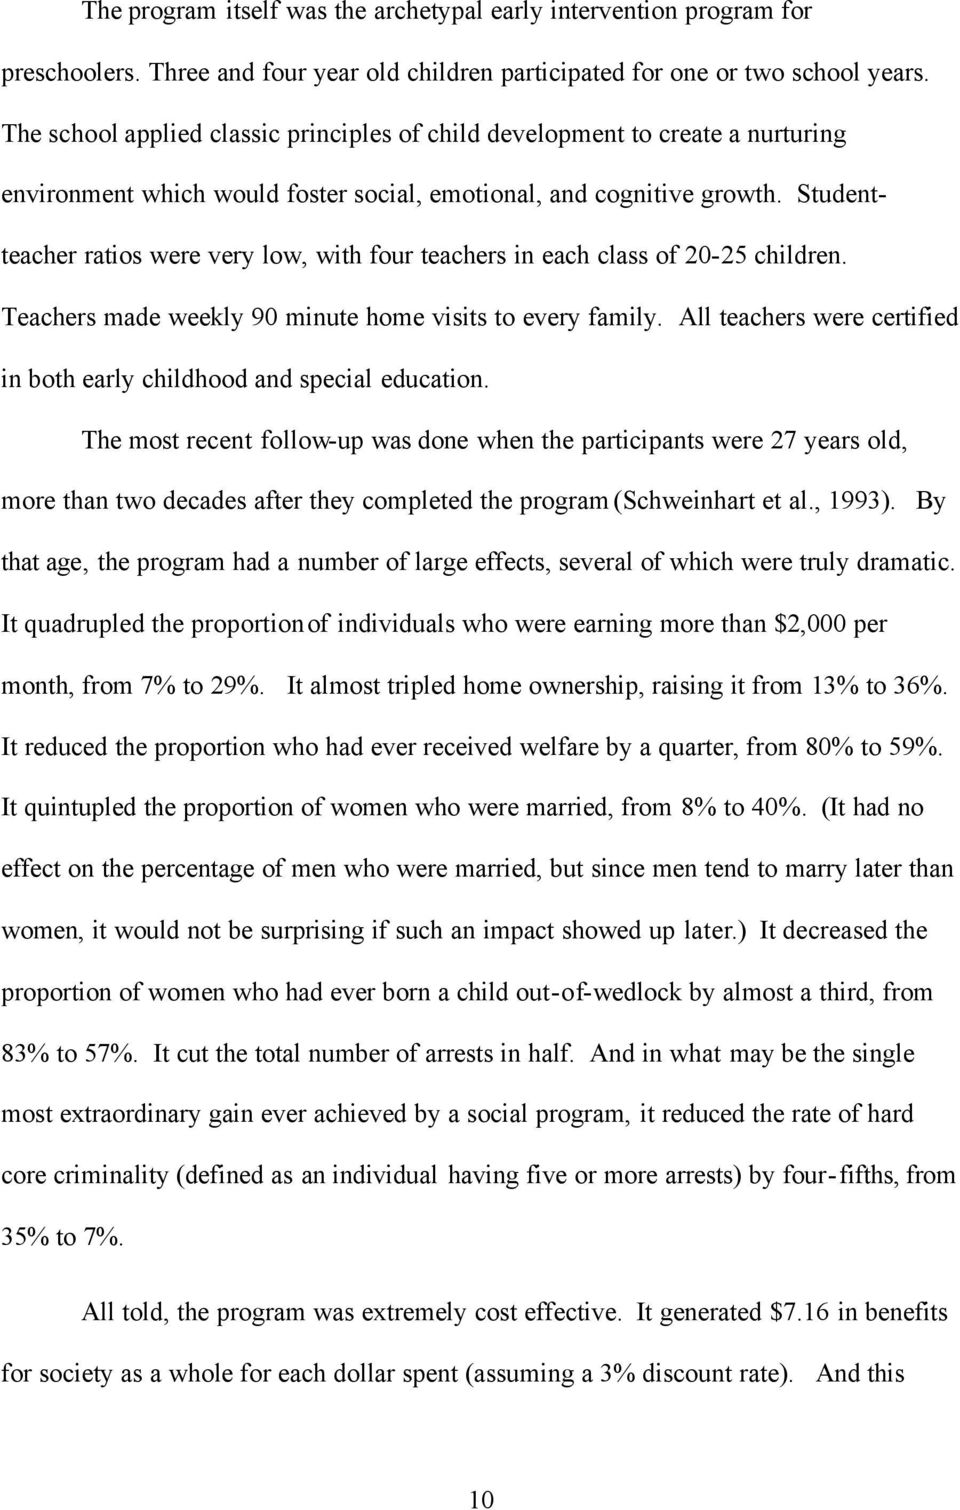 Studentteacher ratios were very low, with four teachers in each class of 20-25 children. Teachers made weekly 90 minute home visits to every family.